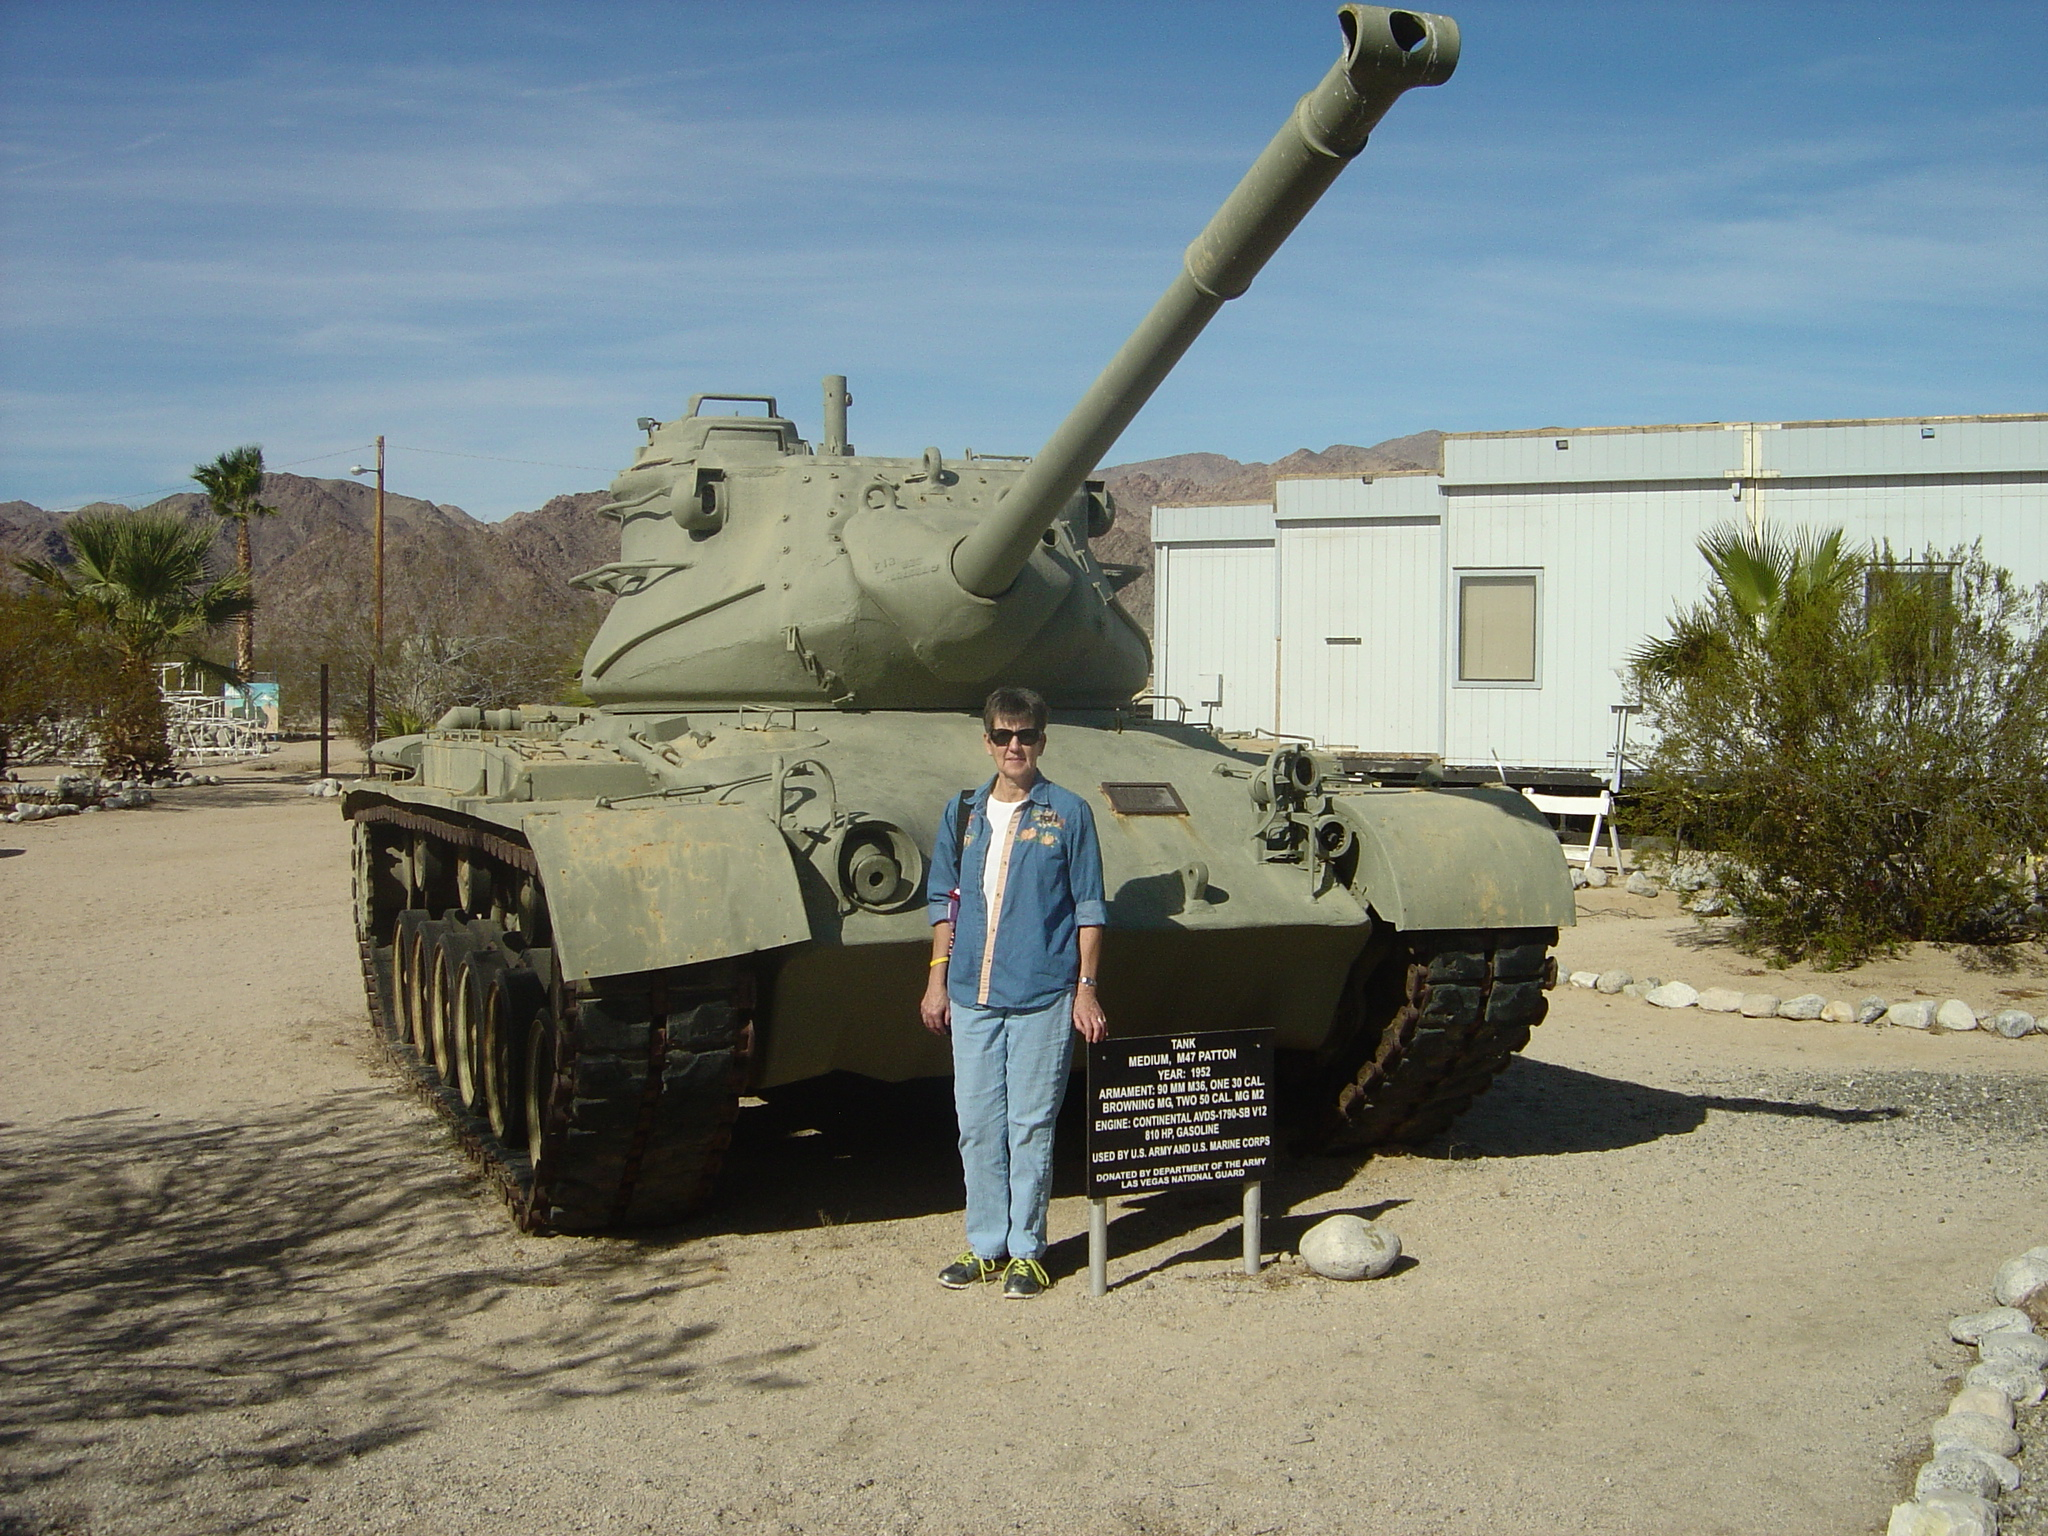 M47 Patton Tank and Joyce